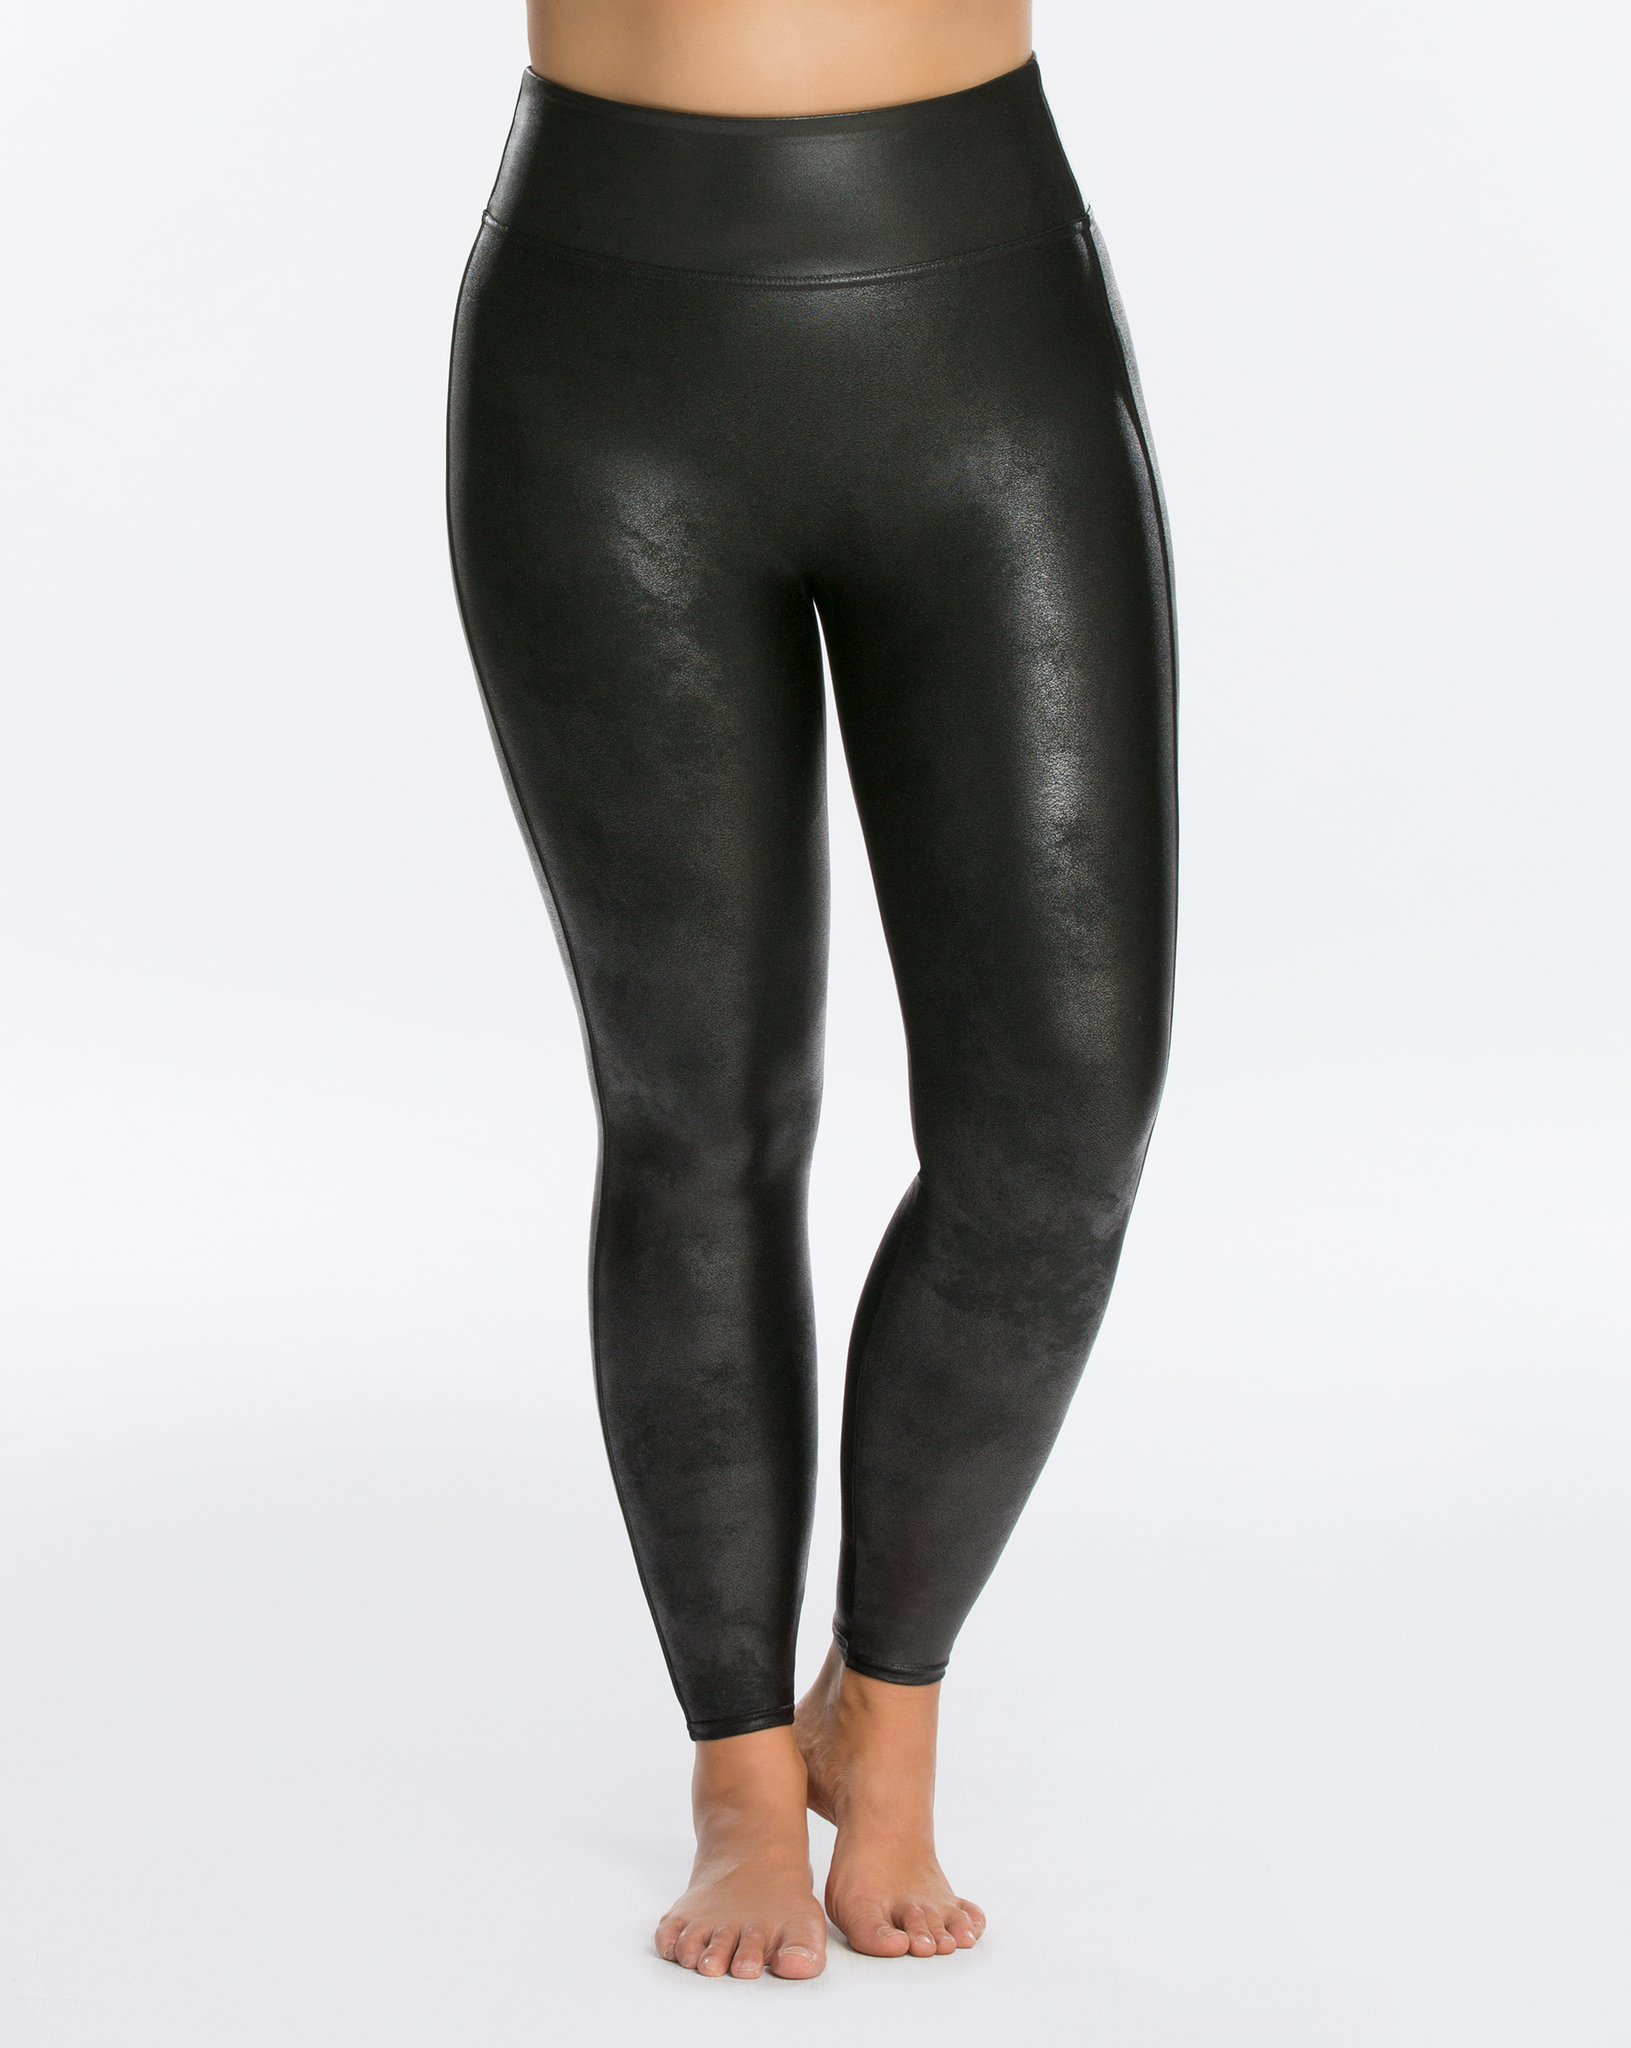 109d24d6d412e SPANX Shaping Faux Leather Leggings | Women's Plus Size ...